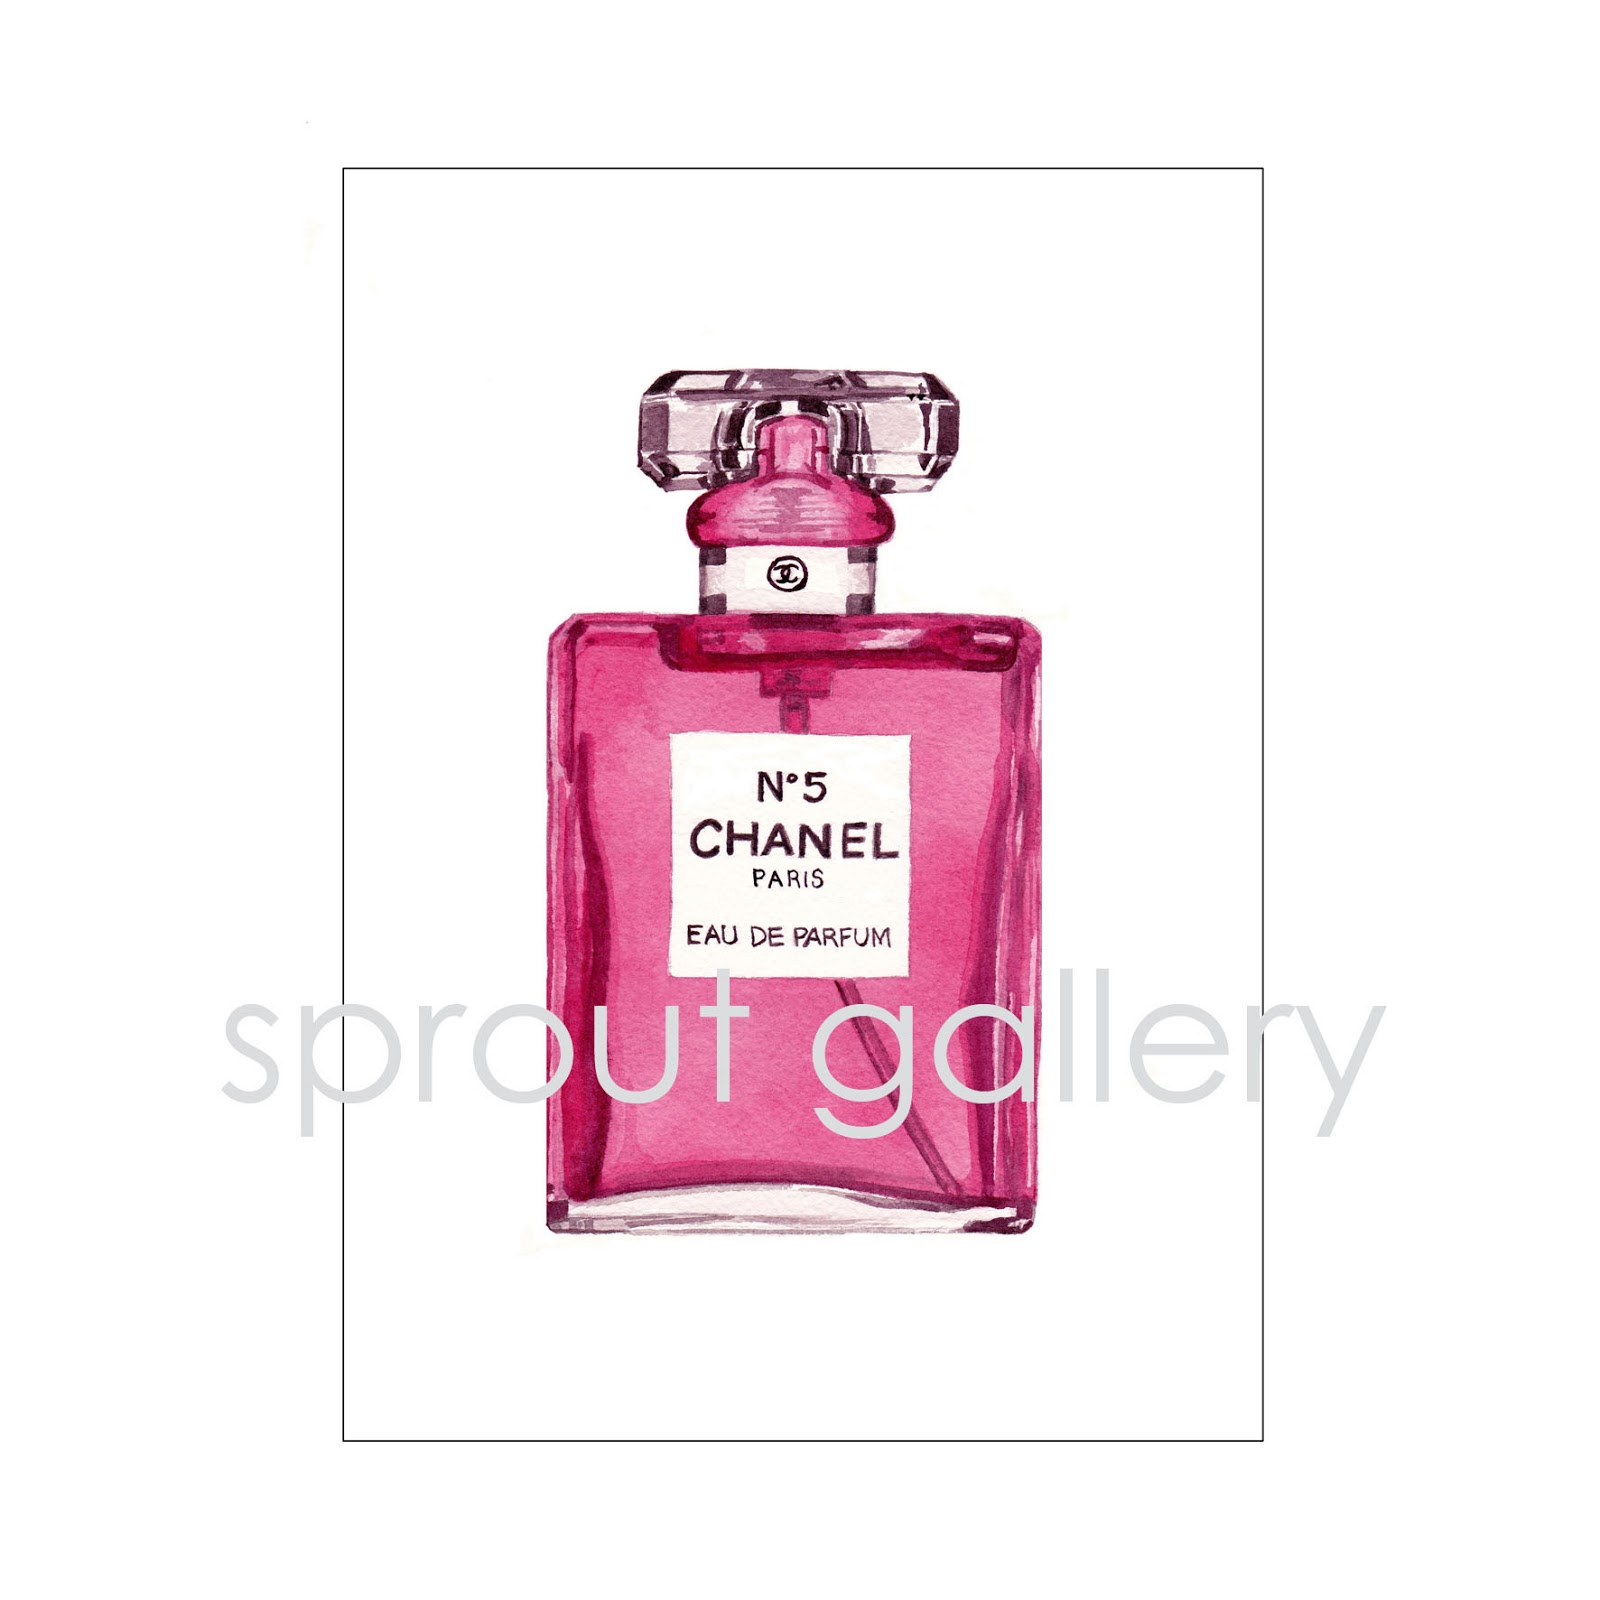 Sprout Gallery A Little Chanel No 5